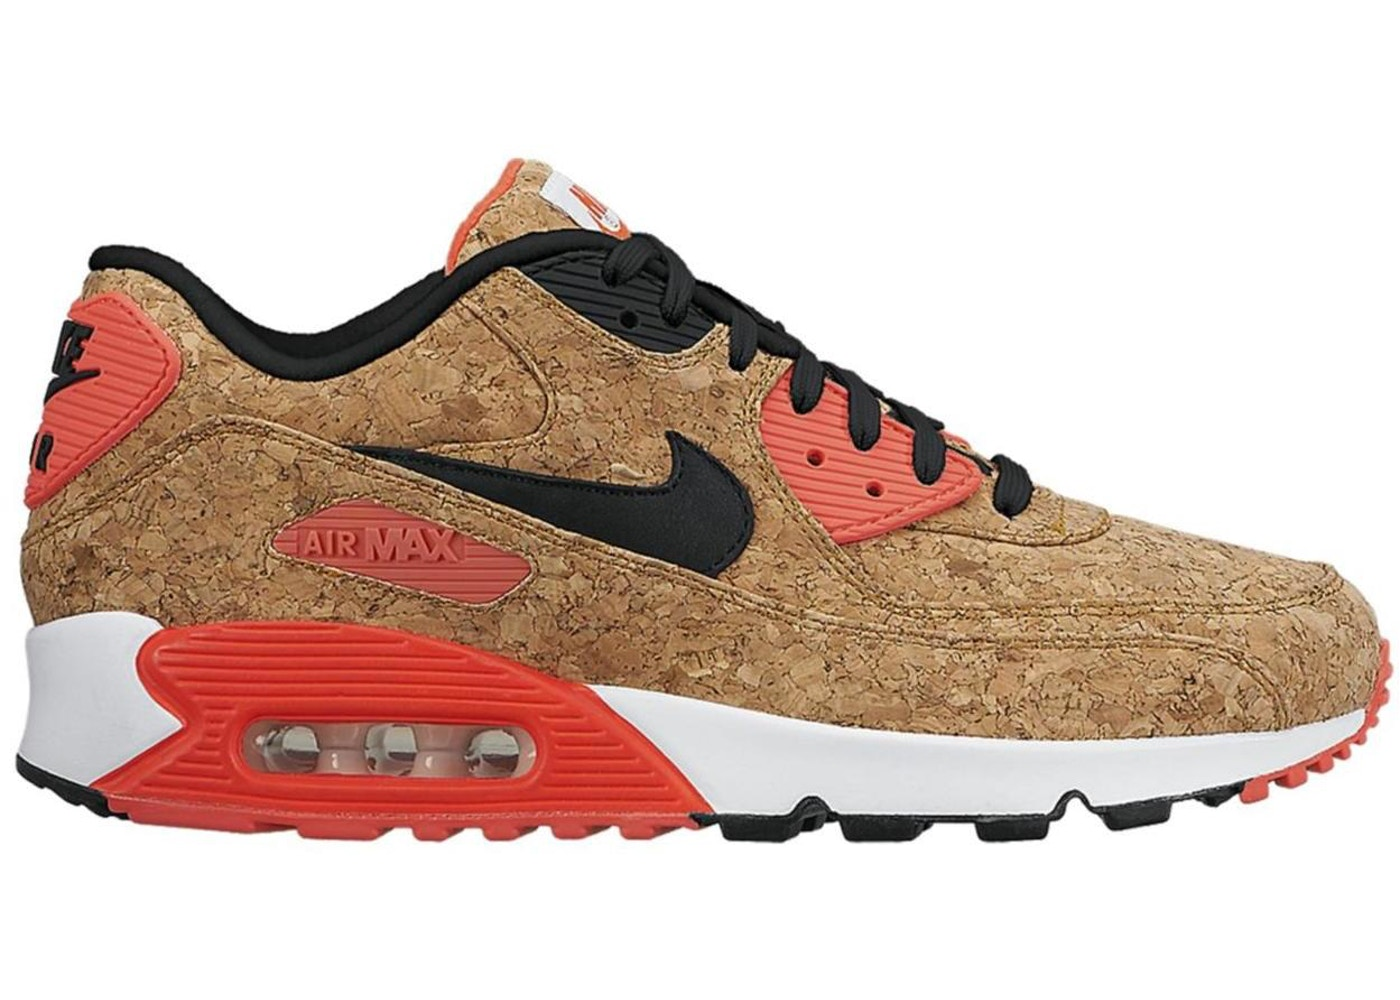 new style 80f31 56bb4 Air Max 90 Cork - 725235-706